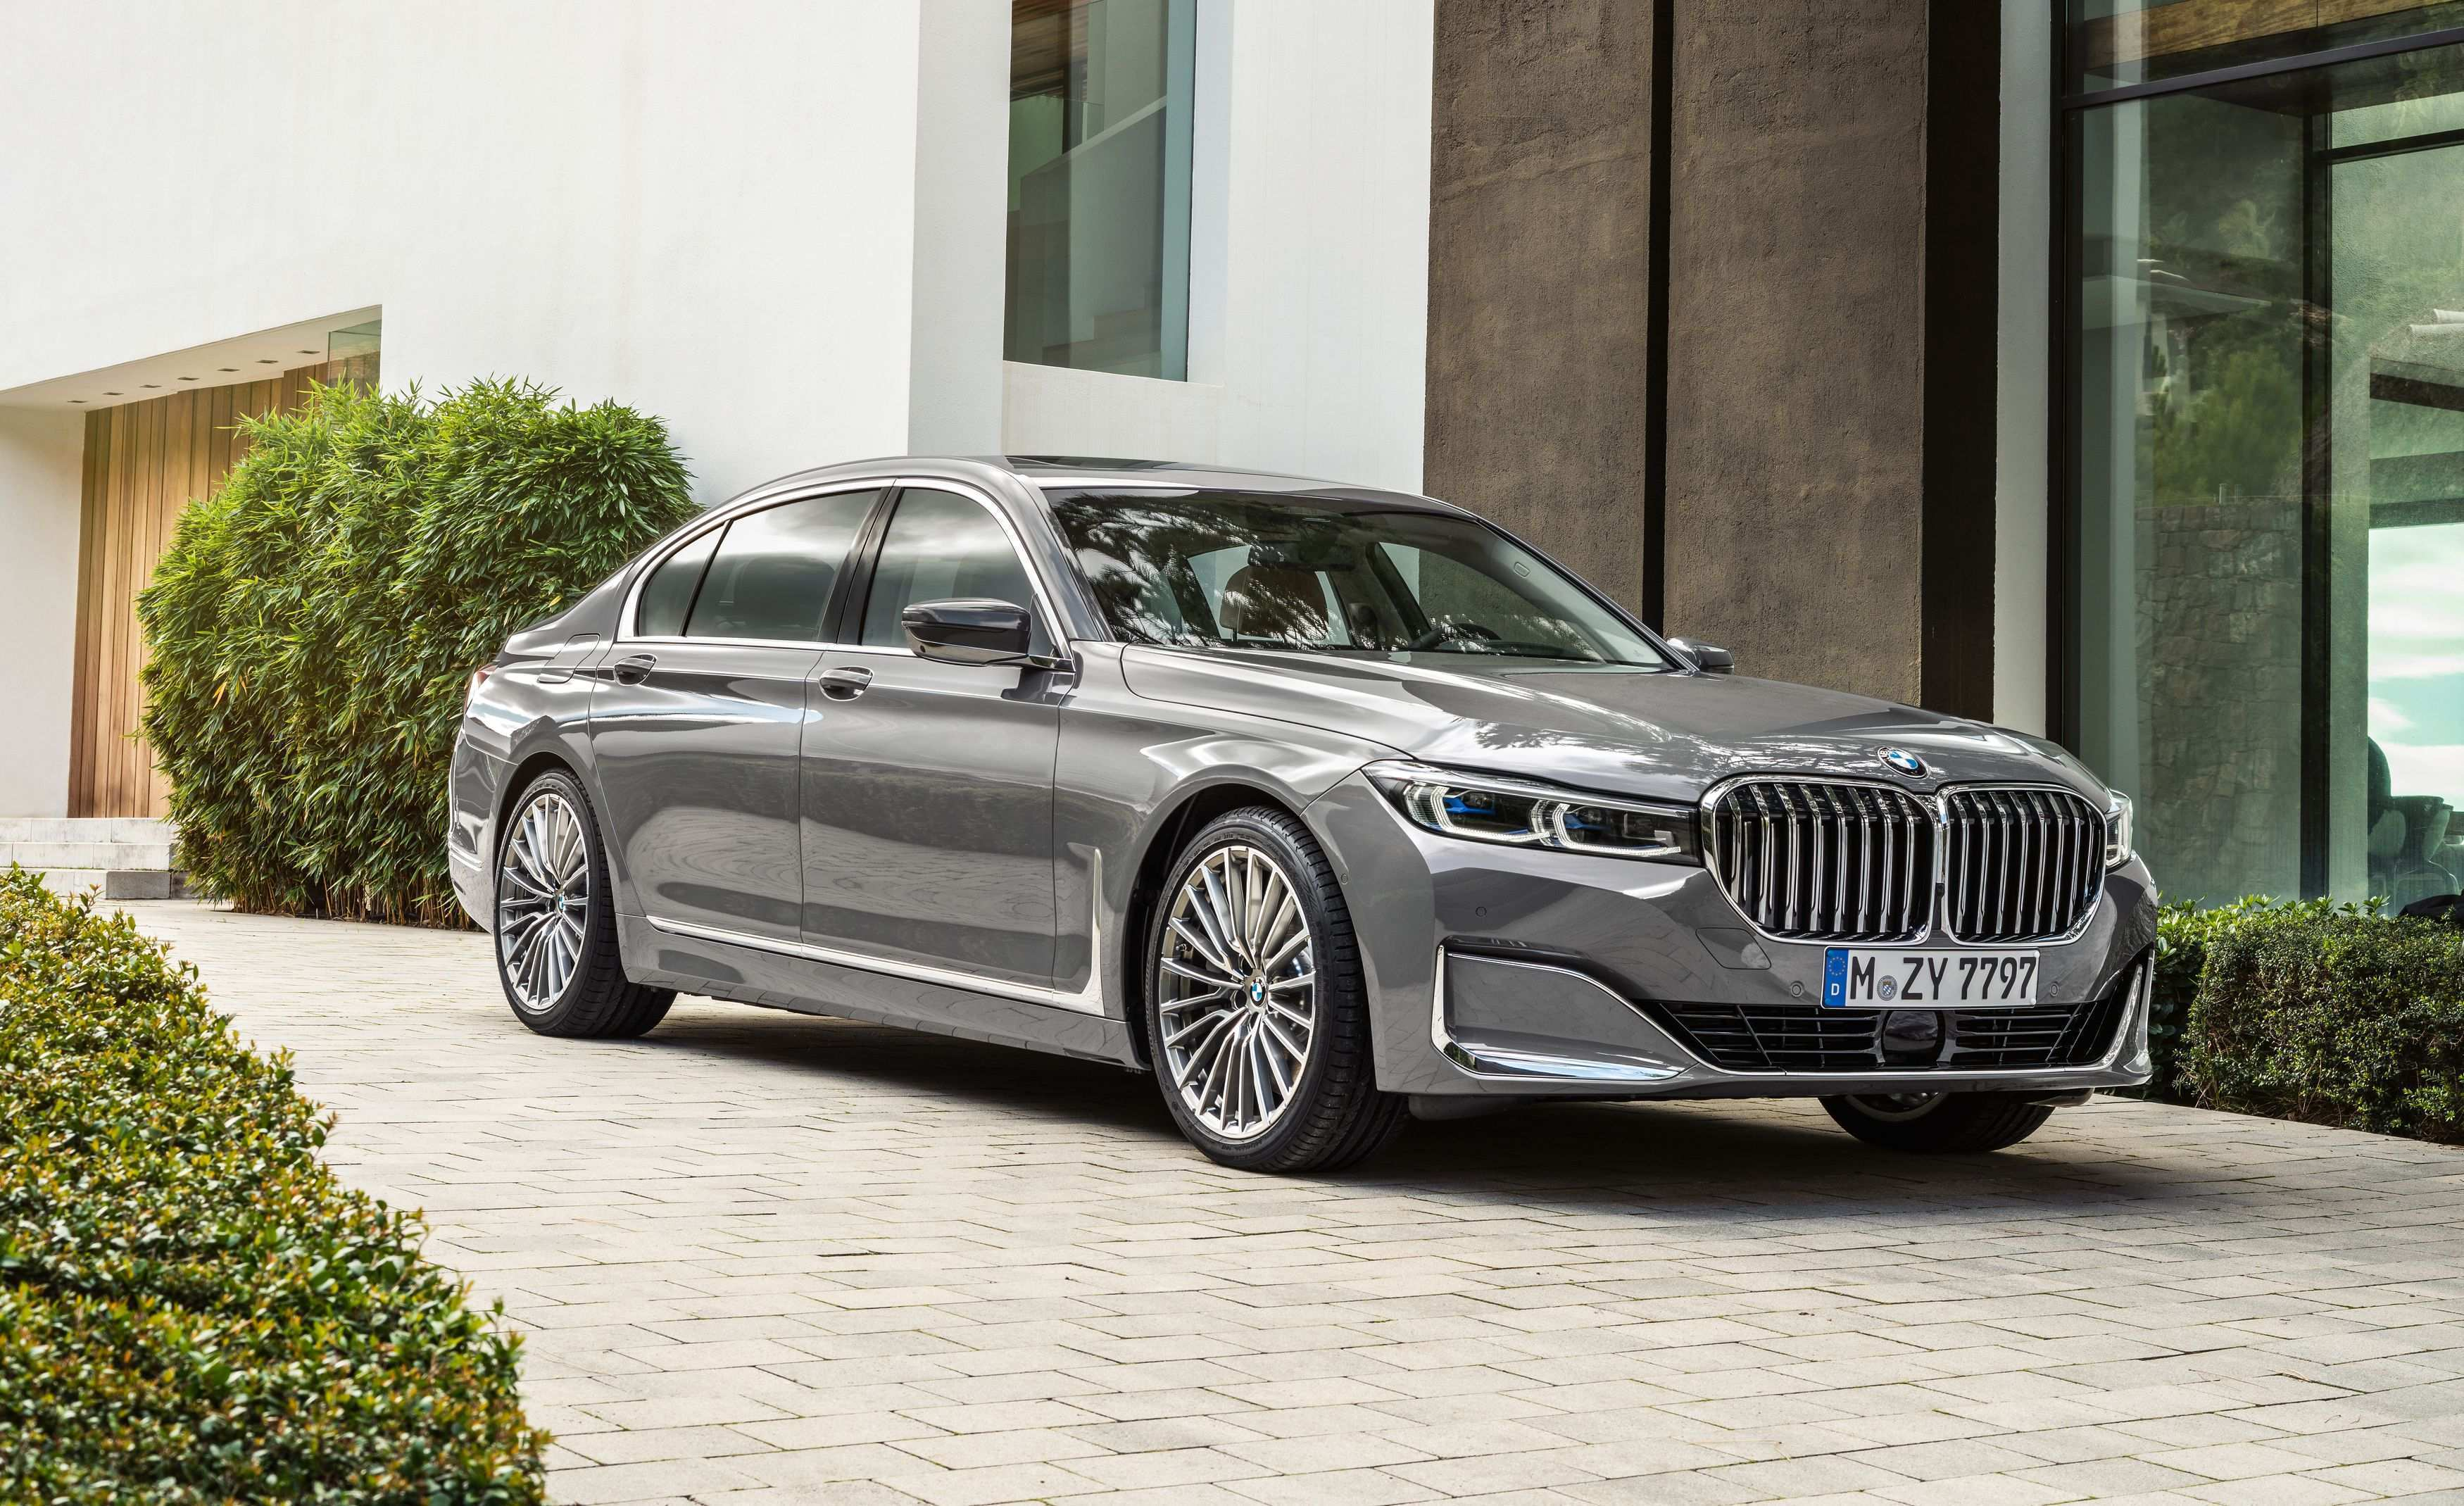 61 A 2020 BMW 7 Series Order Guide Redesign And Concept